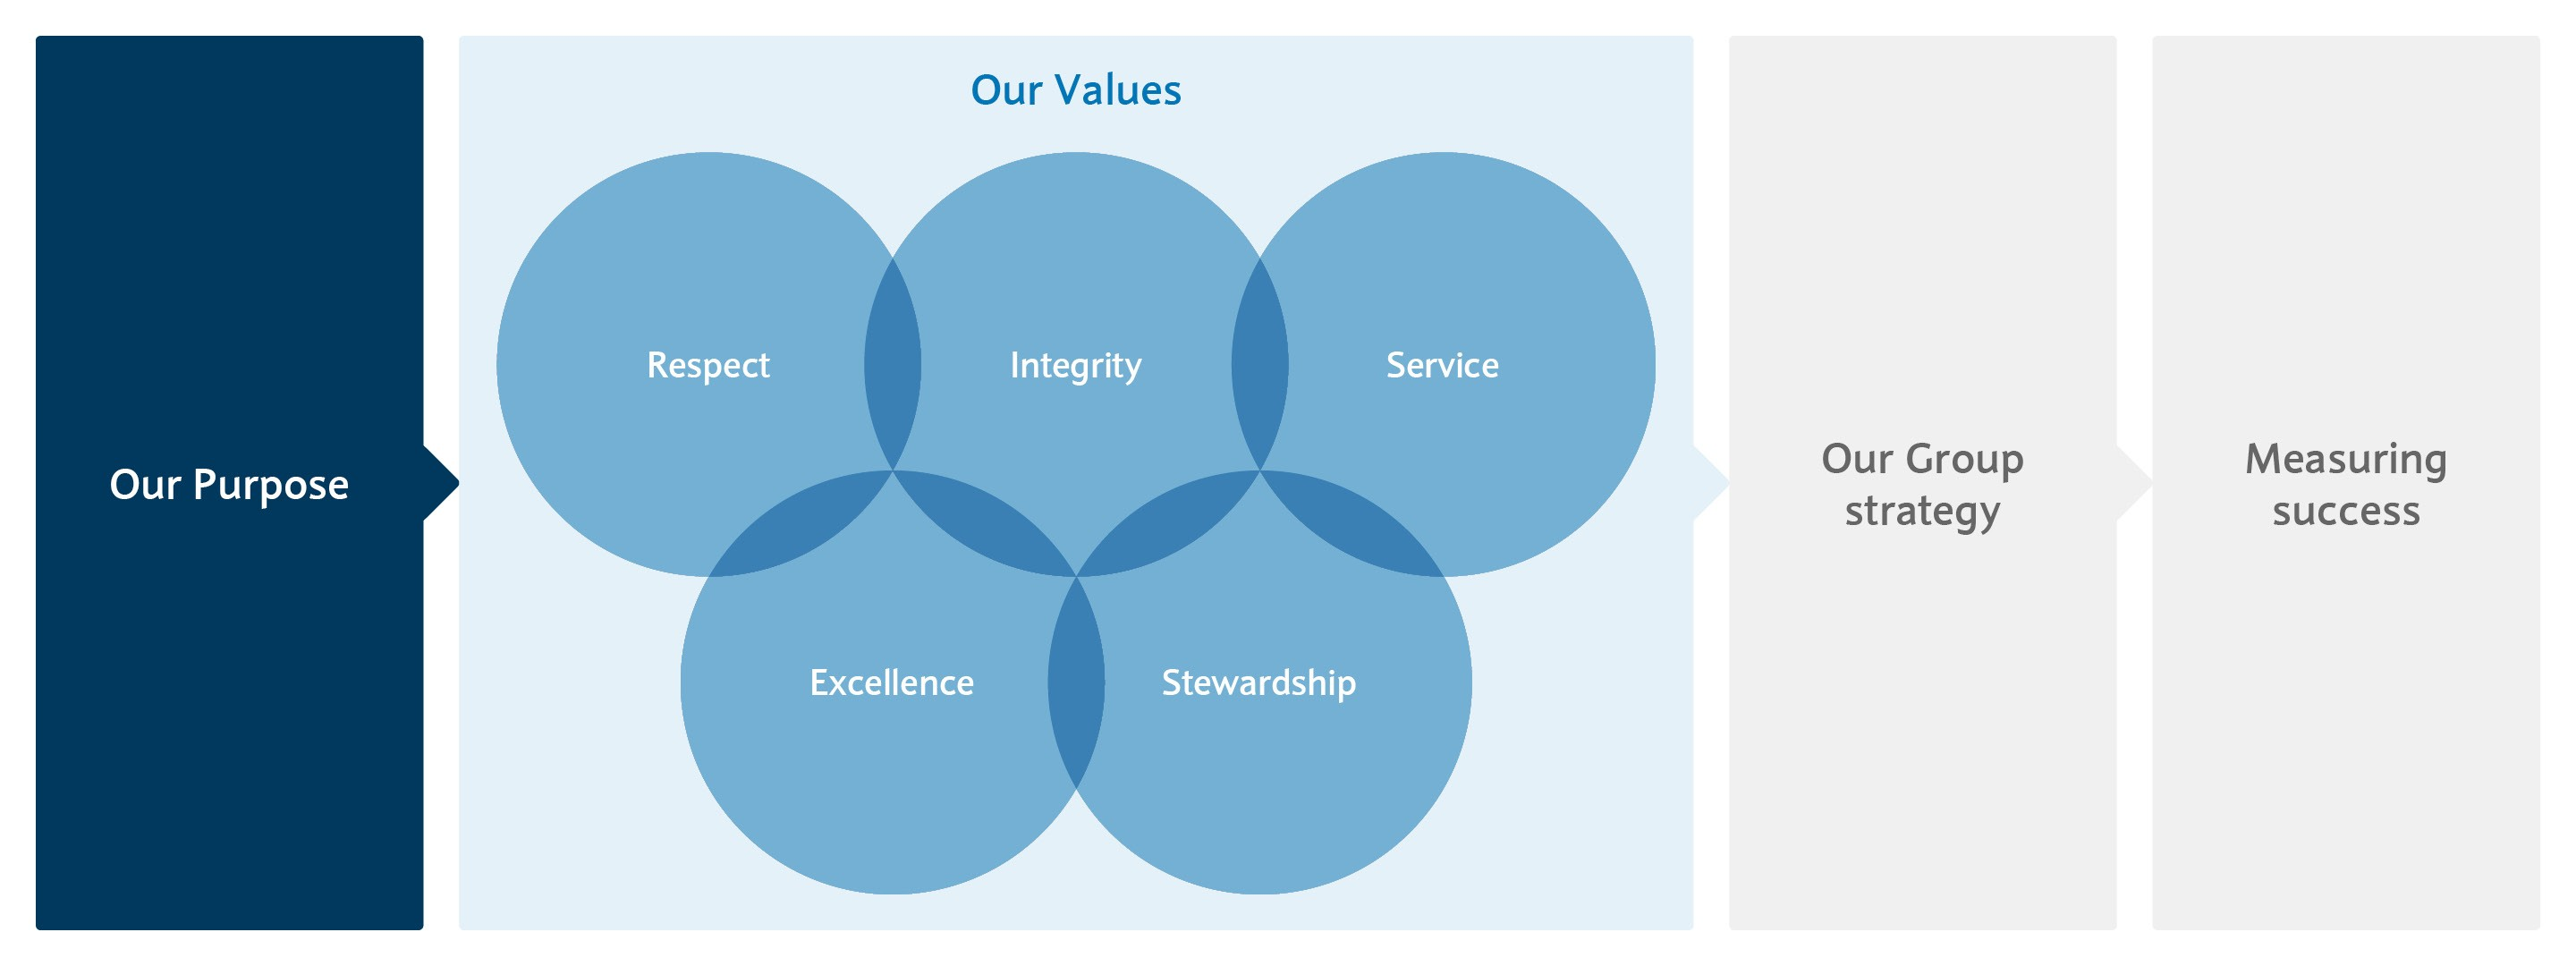 Barclays Purpose, Values and Group Strategy